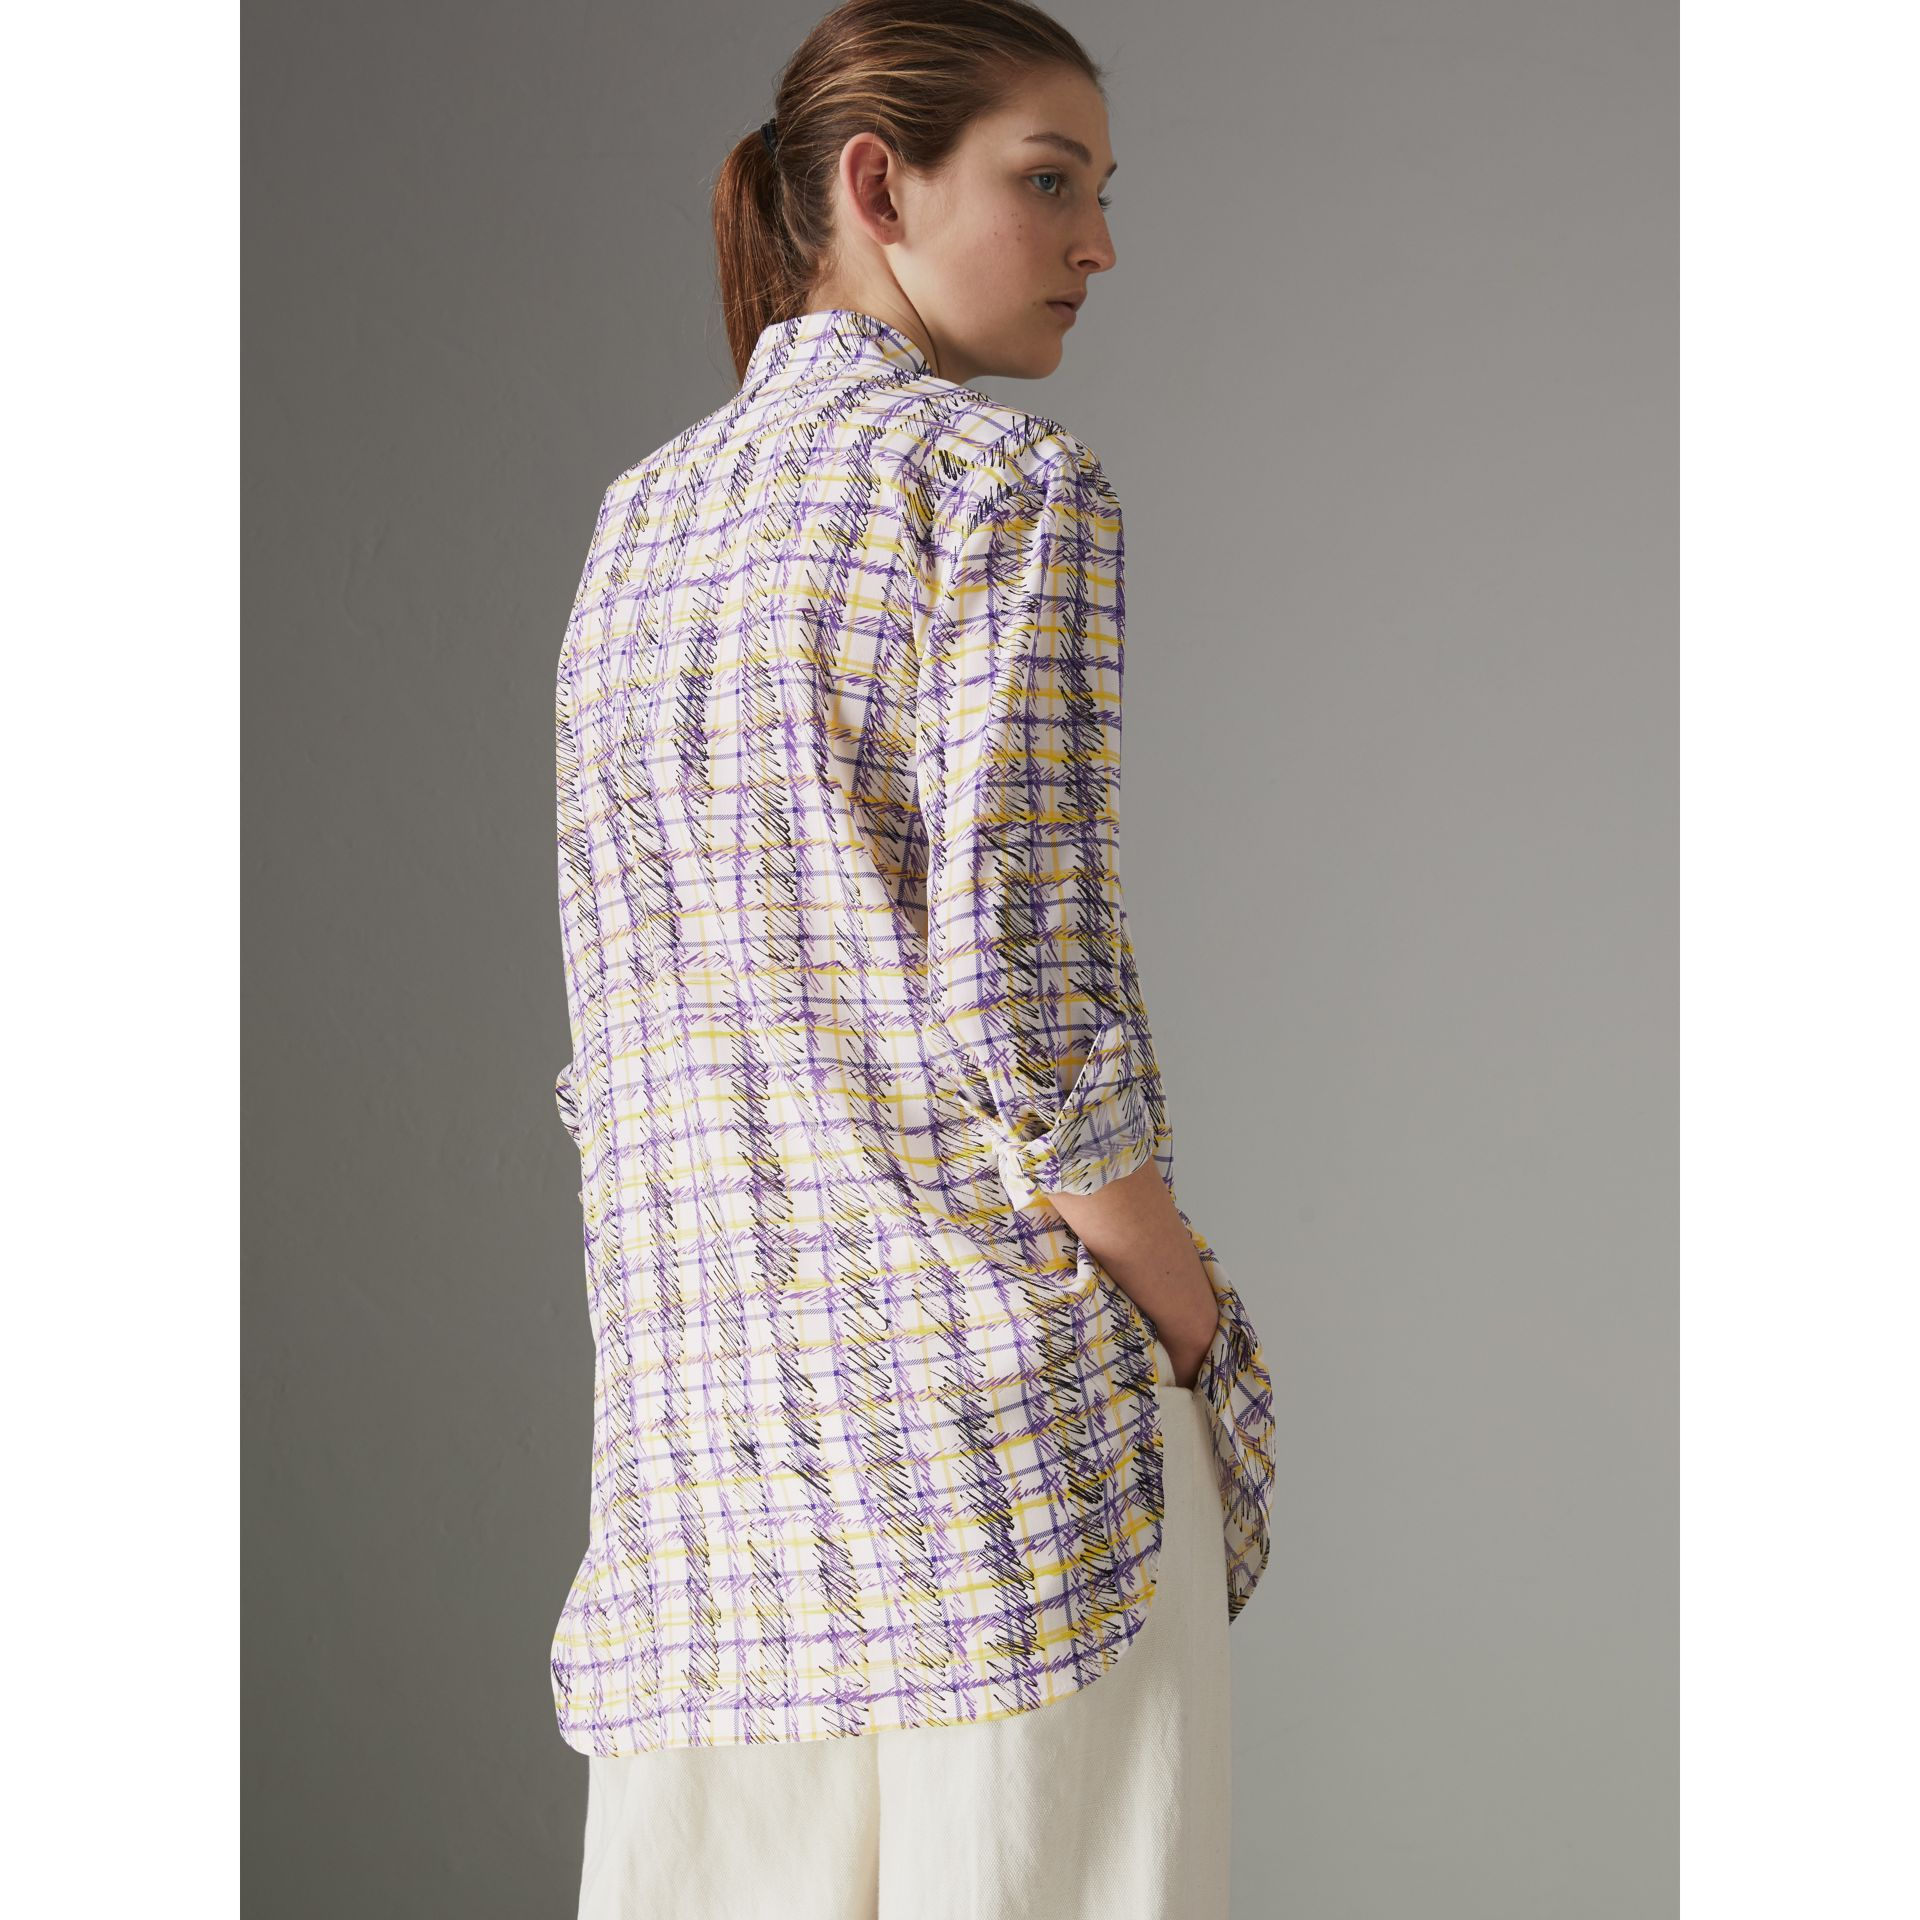 Scribble Check Print Silk Shirt in Heather - Women | Burberry - gallery image 2